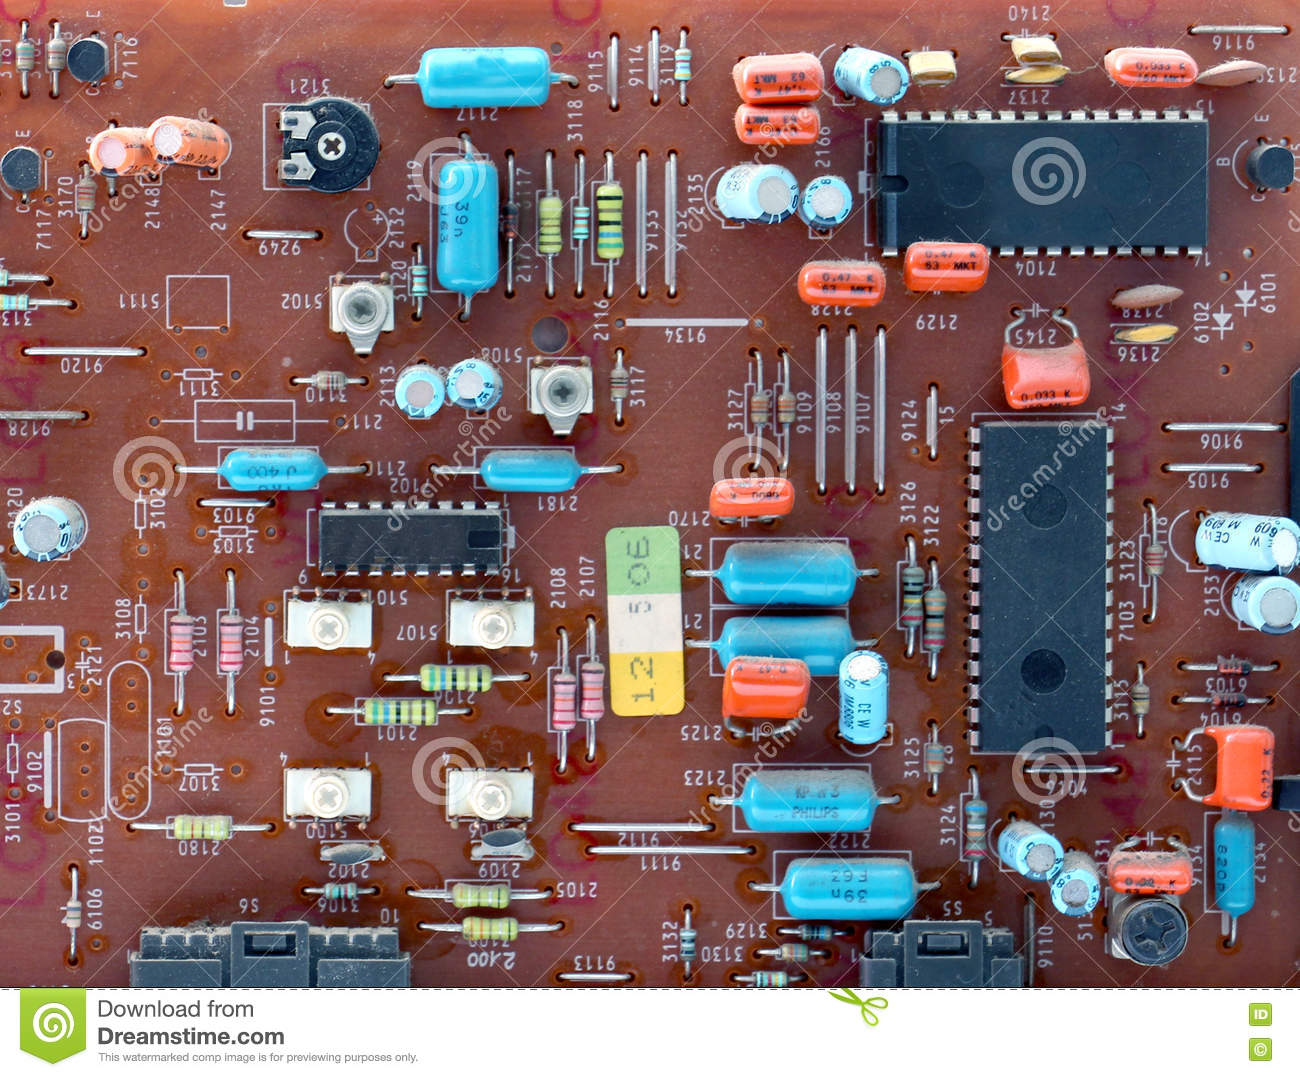 Vintage Circuit Board Everything About Wiring Diagram Recycled Minimagnetic Geek Clipboard Part Of Old Printed Stock Photo Image Rh Dreamstime Com Assembly Art